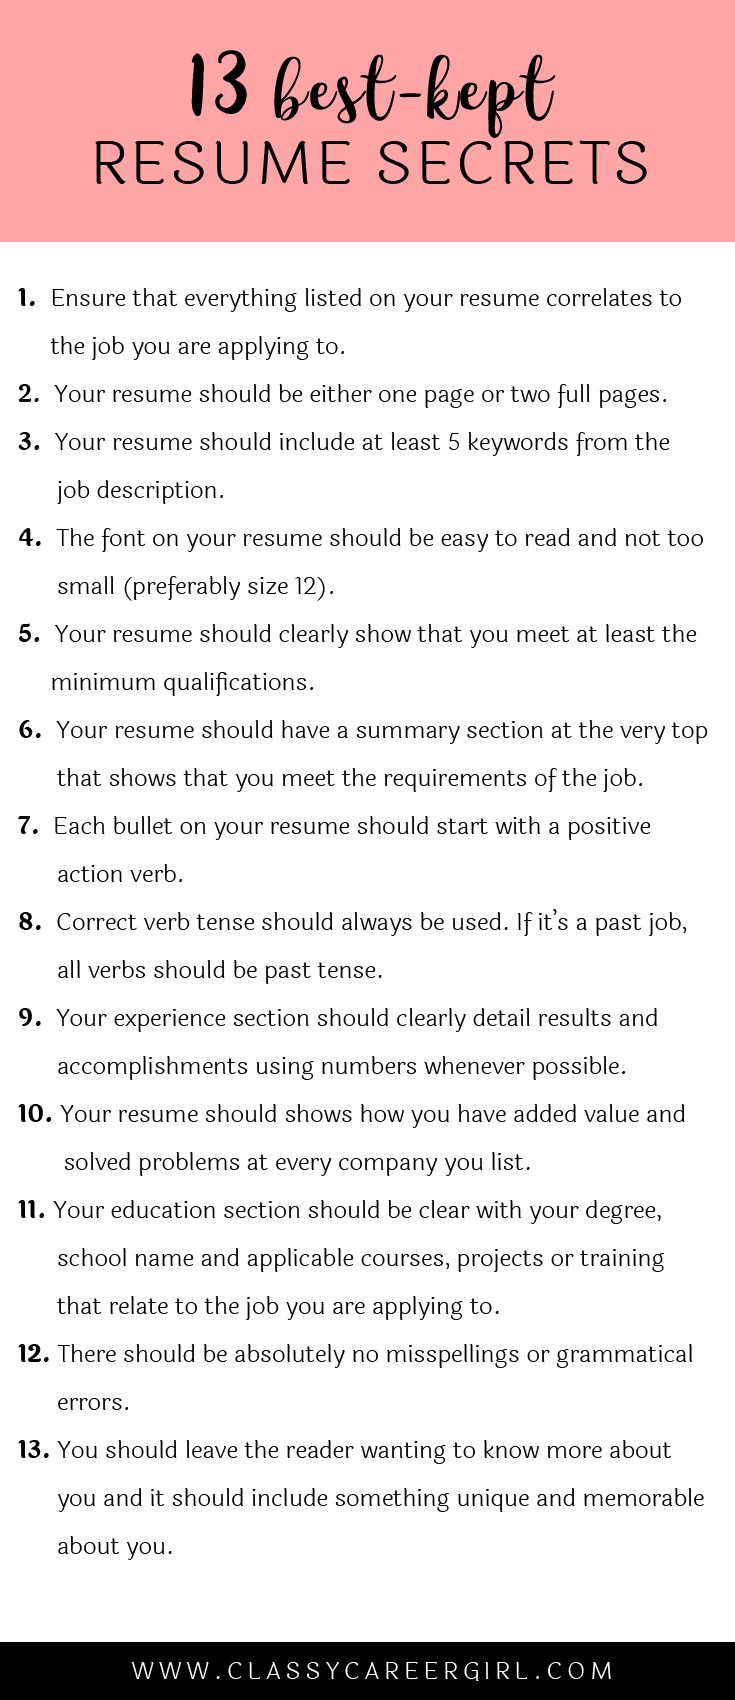 Opposenewapstandardsus  Outstanding  Ideas About Resume On Pinterest  Cv Format Resume Cv And  With Fetching Some Hiring Managers Will Toss Your Resume Out If You Dont Know These  With Archaic How To Build A College Resume Also Human Resource Specialist Resume In Addition Resume Sheet And Horticulture Resume As Well As Human Resources Skills Resume Additionally Service Resume From Pinterestcom With Opposenewapstandardsus  Fetching  Ideas About Resume On Pinterest  Cv Format Resume Cv And  With Archaic Some Hiring Managers Will Toss Your Resume Out If You Dont Know These  And Outstanding How To Build A College Resume Also Human Resource Specialist Resume In Addition Resume Sheet From Pinterestcom